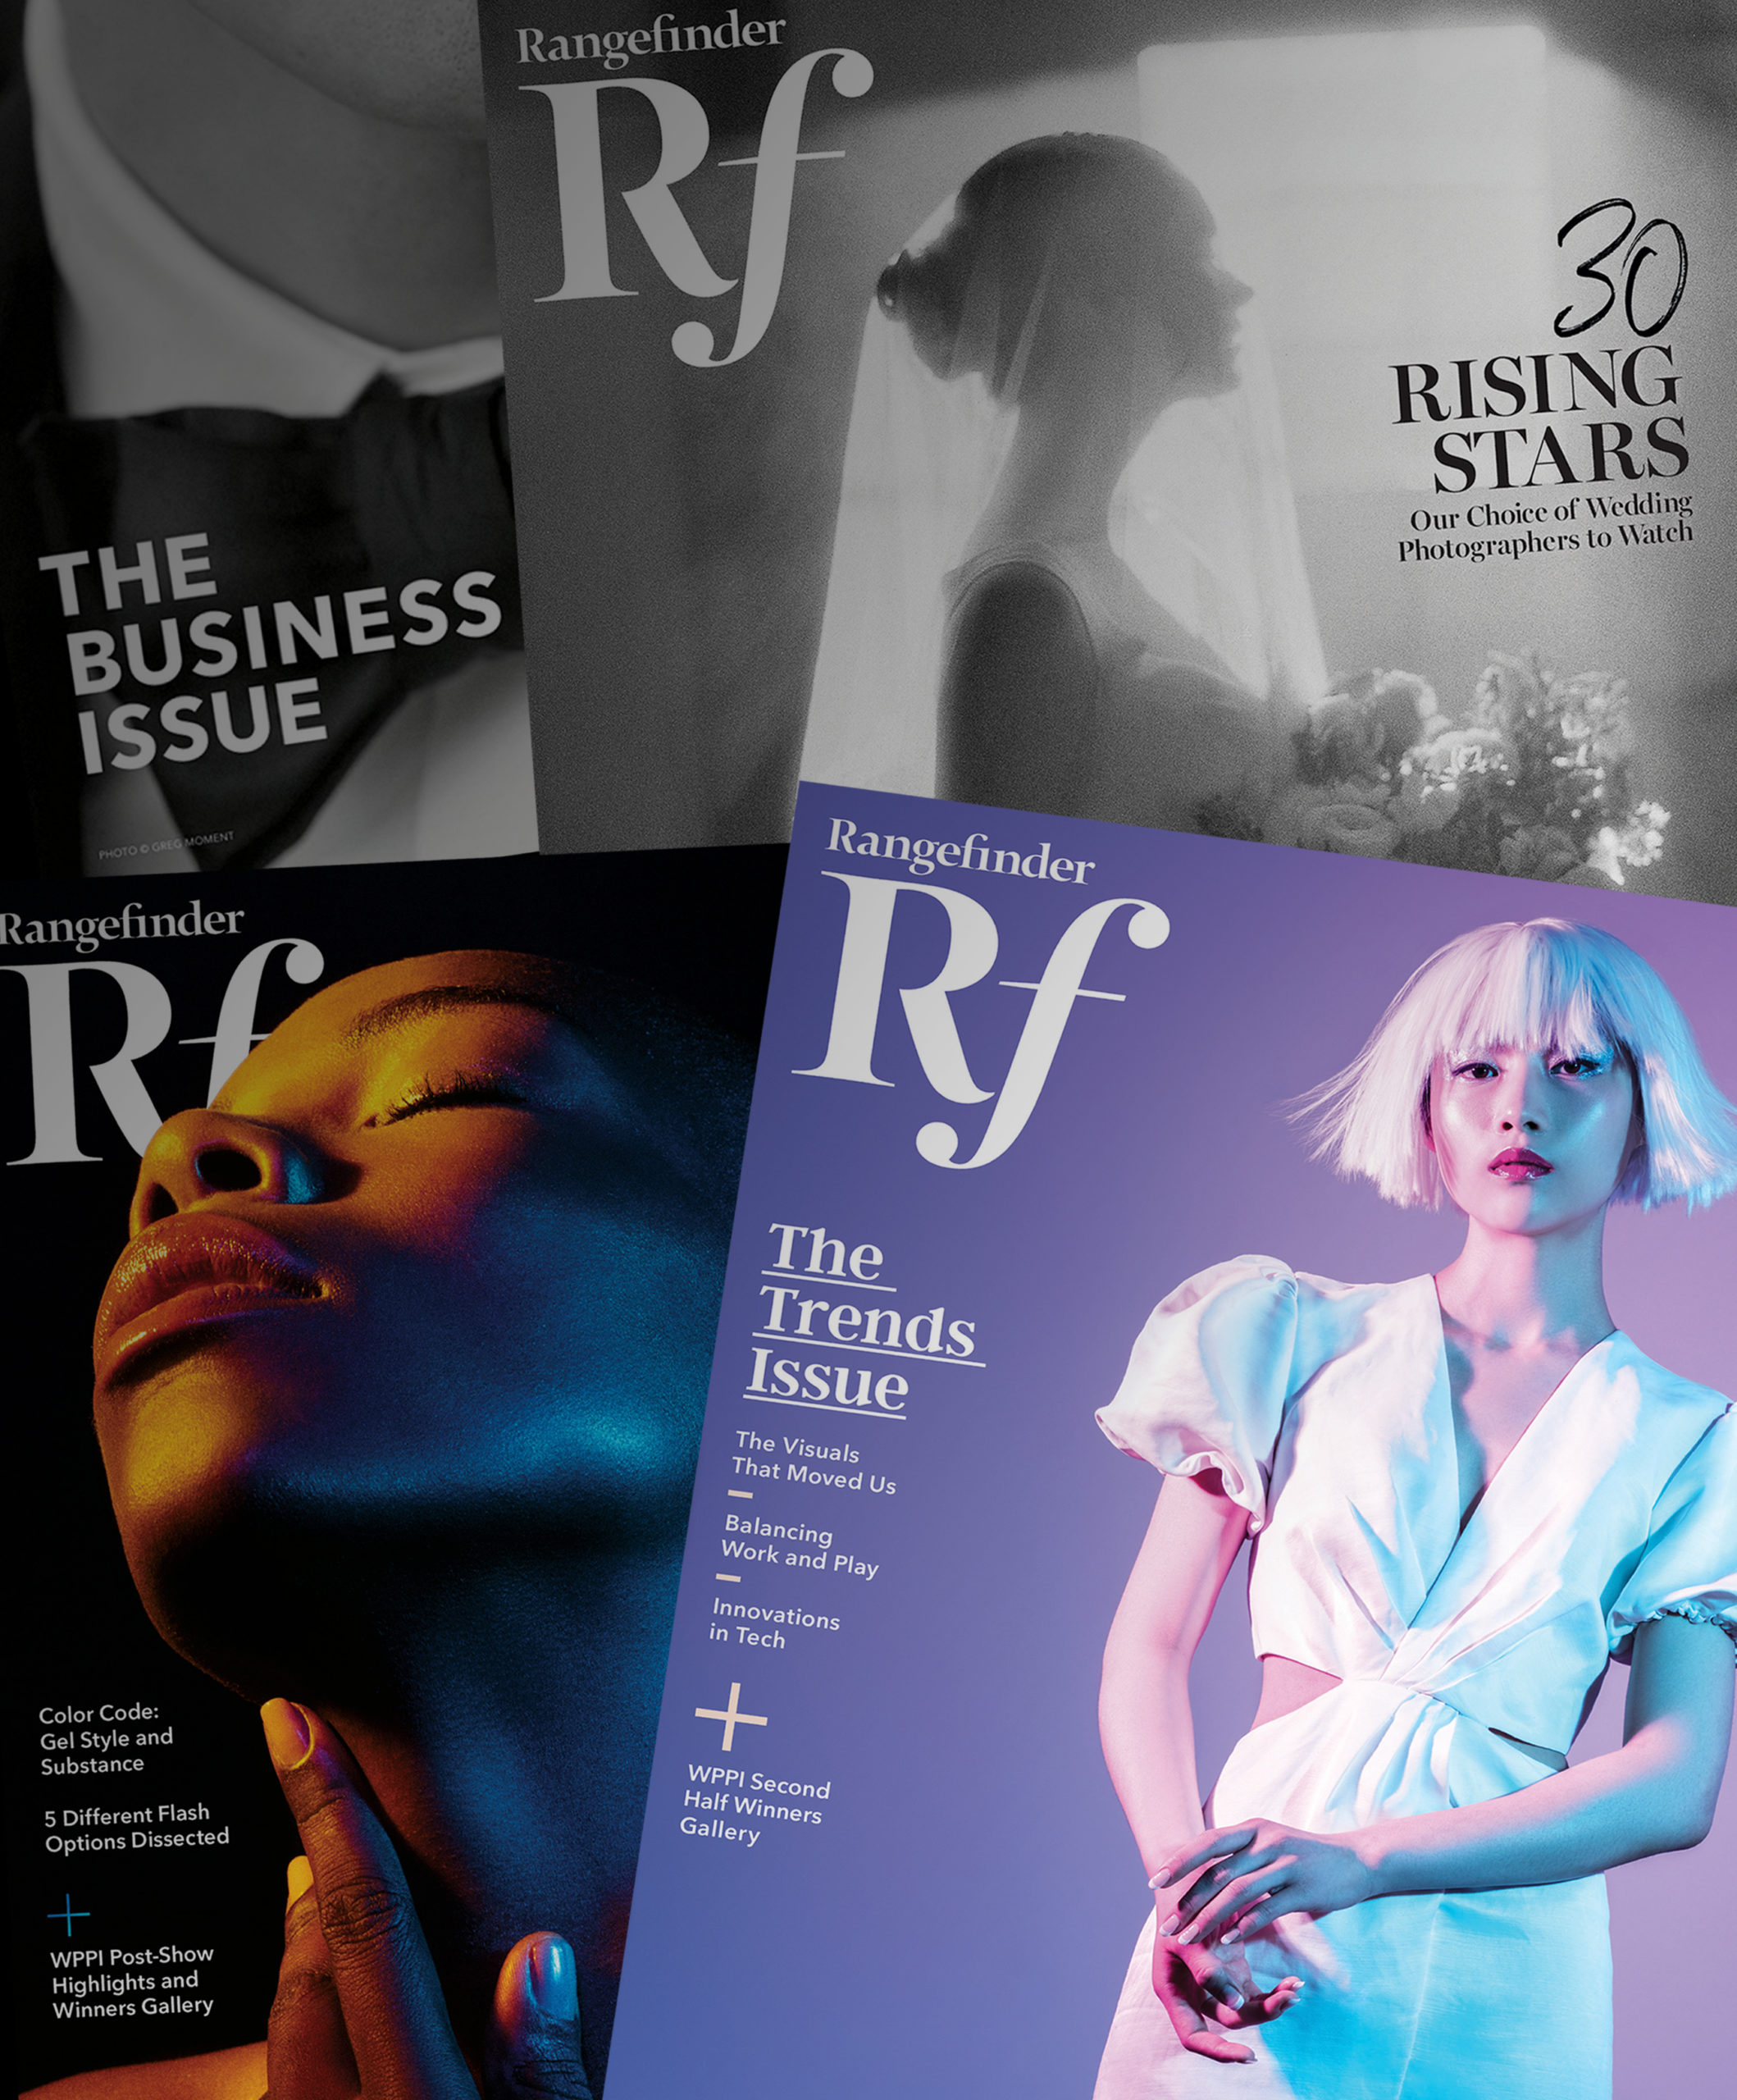 Collage of Rangefinder magazine covers of the trend issue, 30 rising stars, the business issue, and the winner gallery